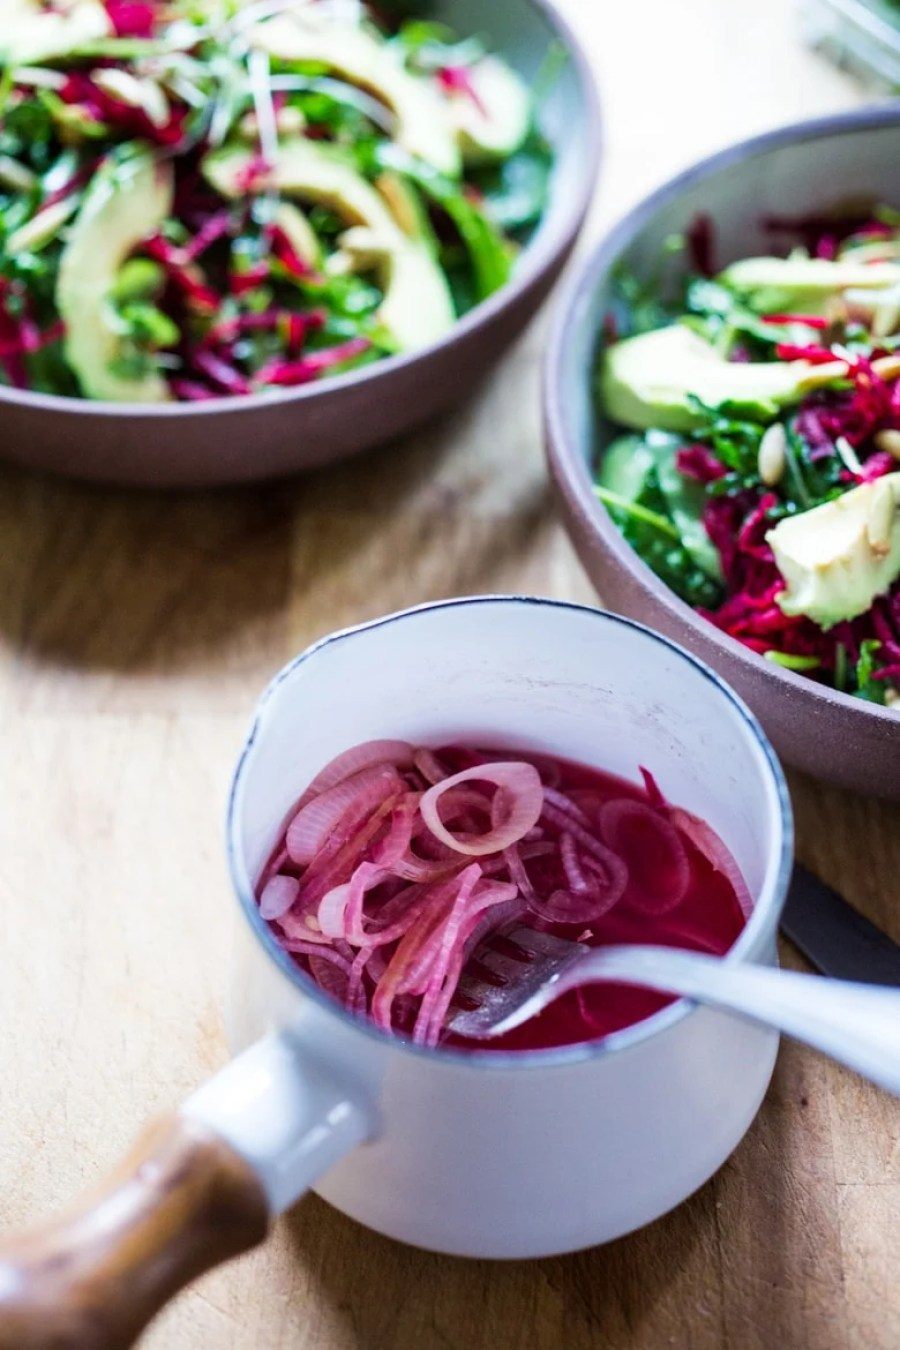 QUICK PICKLED SHALLOTS add the BEST flavor! Serve over salads, wraps or in sandwiches! | www.feasingathome.com